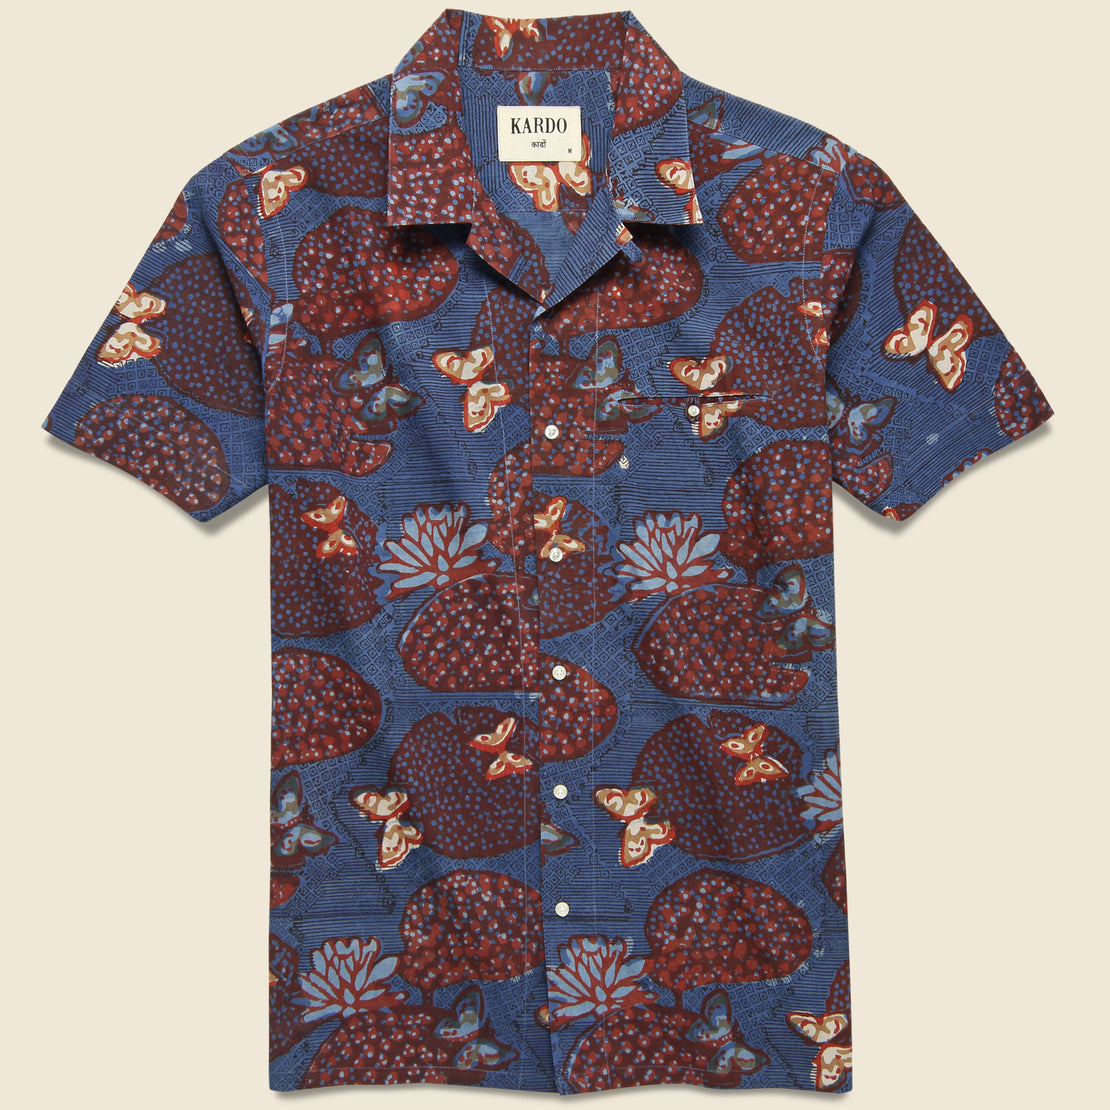 Kardo Kendrick Shirt - Navy/Red Floral